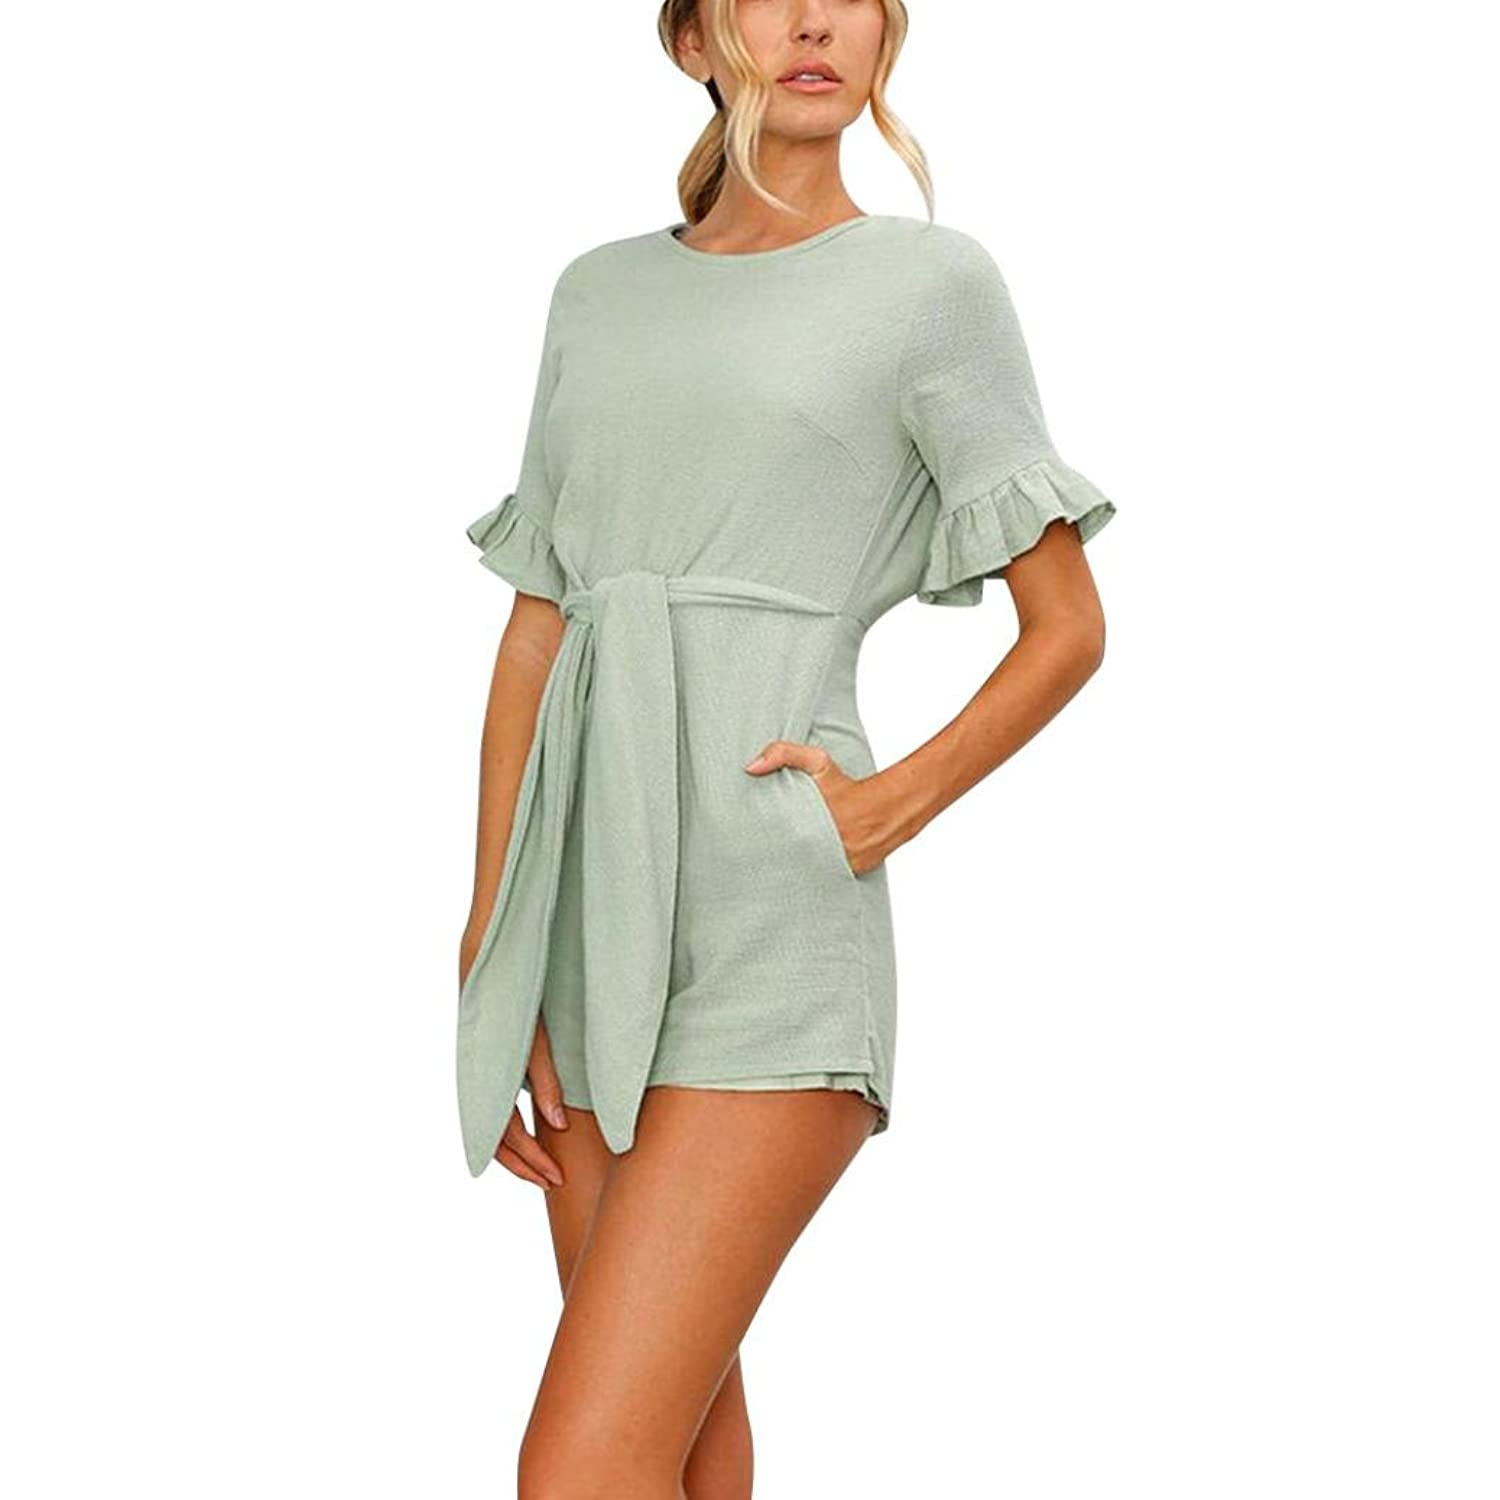 8accc44429a Amazon.com  RAISINGTOP Womens Romper Outfits Sexy Solid Short Pants Summer  Casual Night Club Jumpsuit with Sleeves Elegant New  Clothing